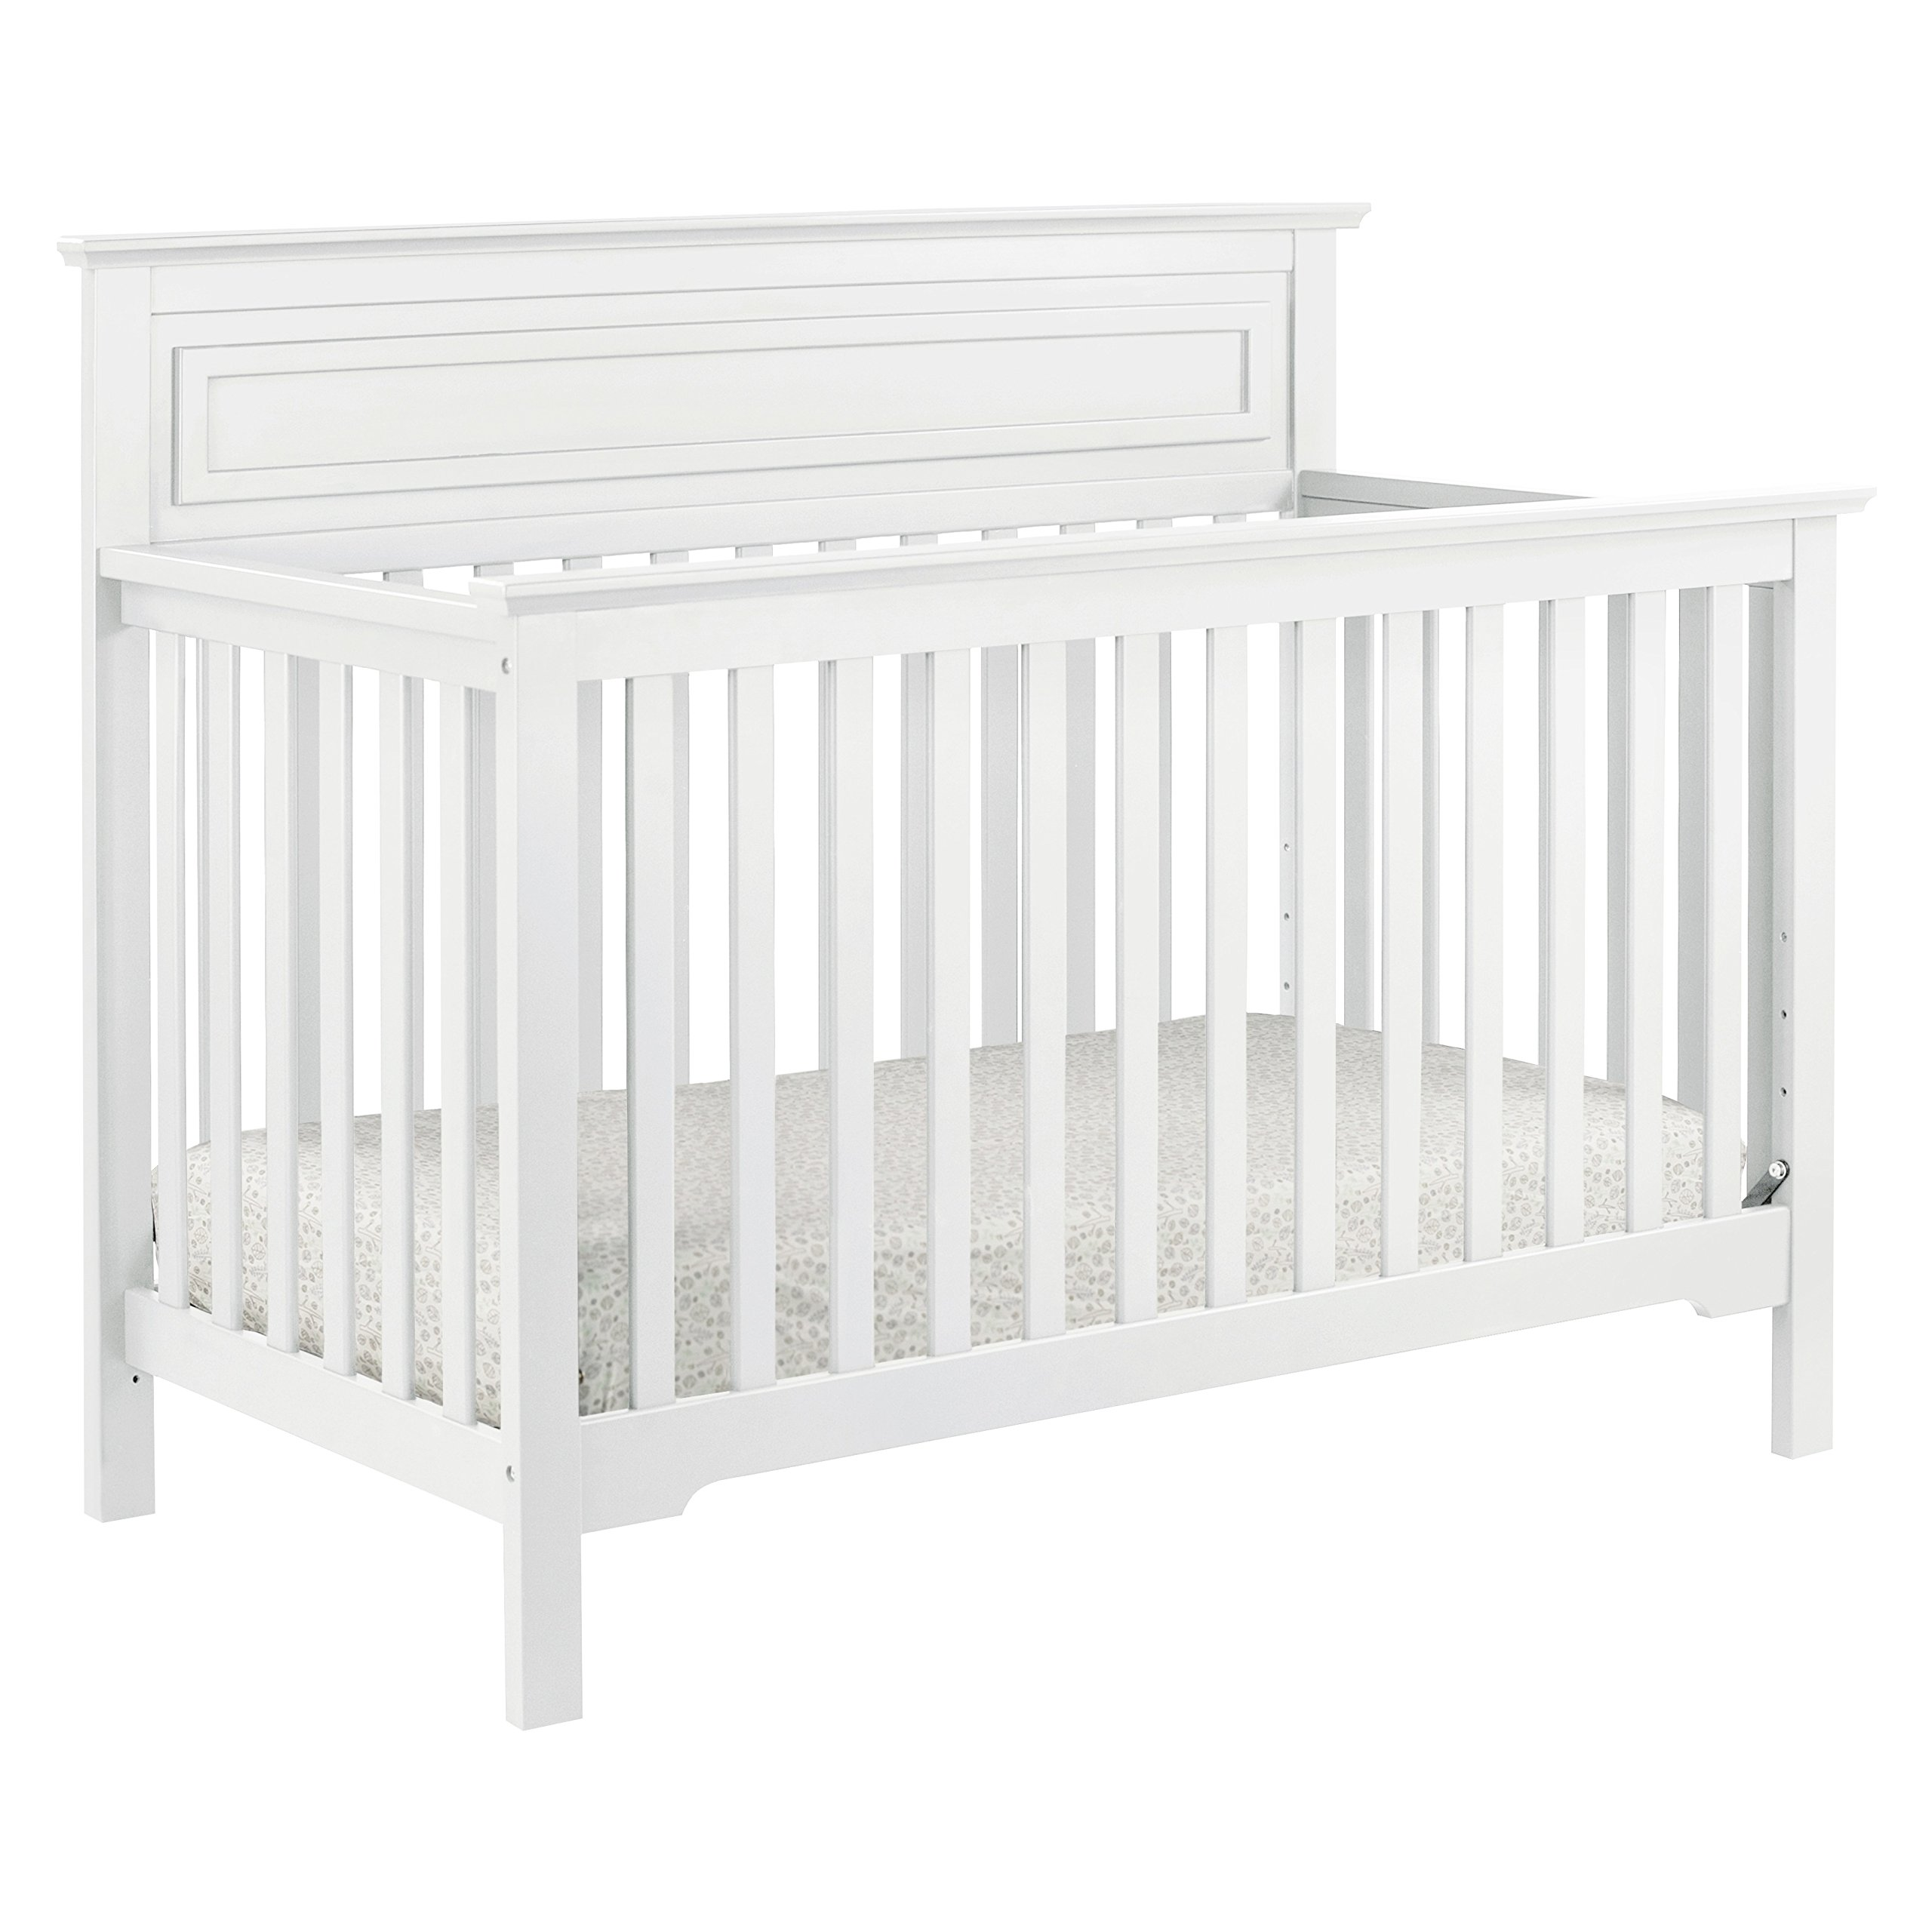 of best white for design dresser furniture f collection crib cribs bedroom stationary in davinci and image the pict ideas trend jenny lind convertible